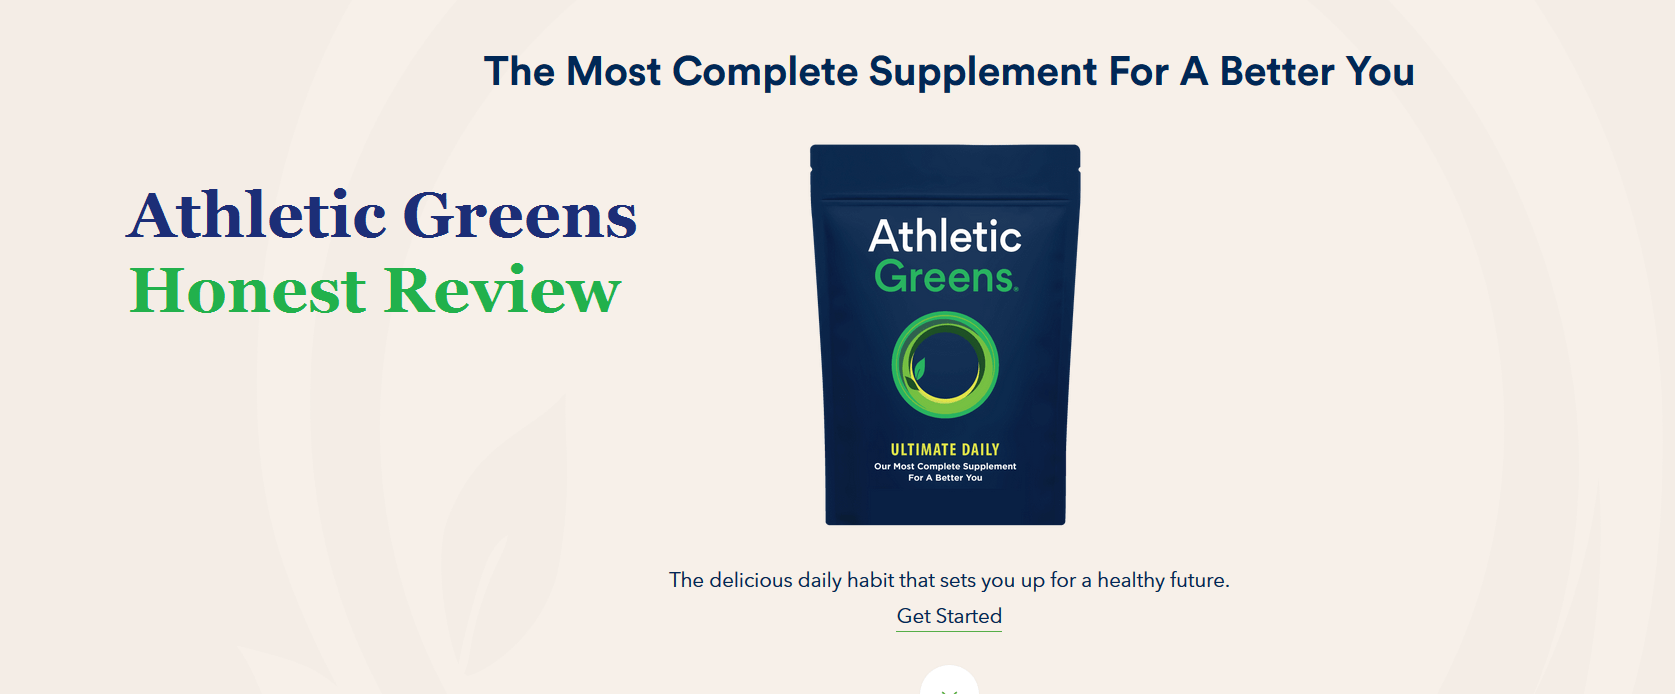 Athletic Greens Review - What Make It Best Superfood